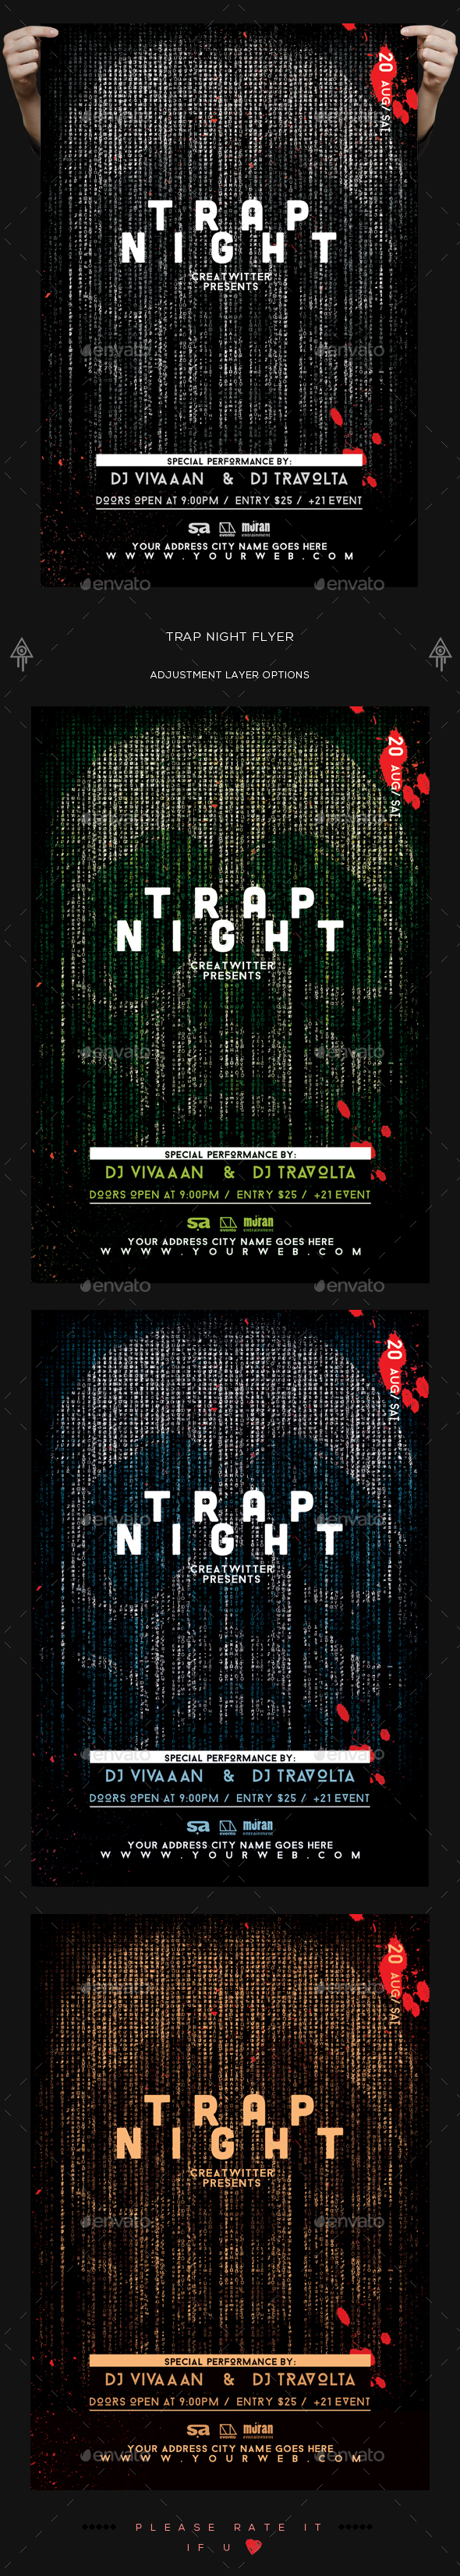 Trap Night Flyer - Clubs & Parties Events